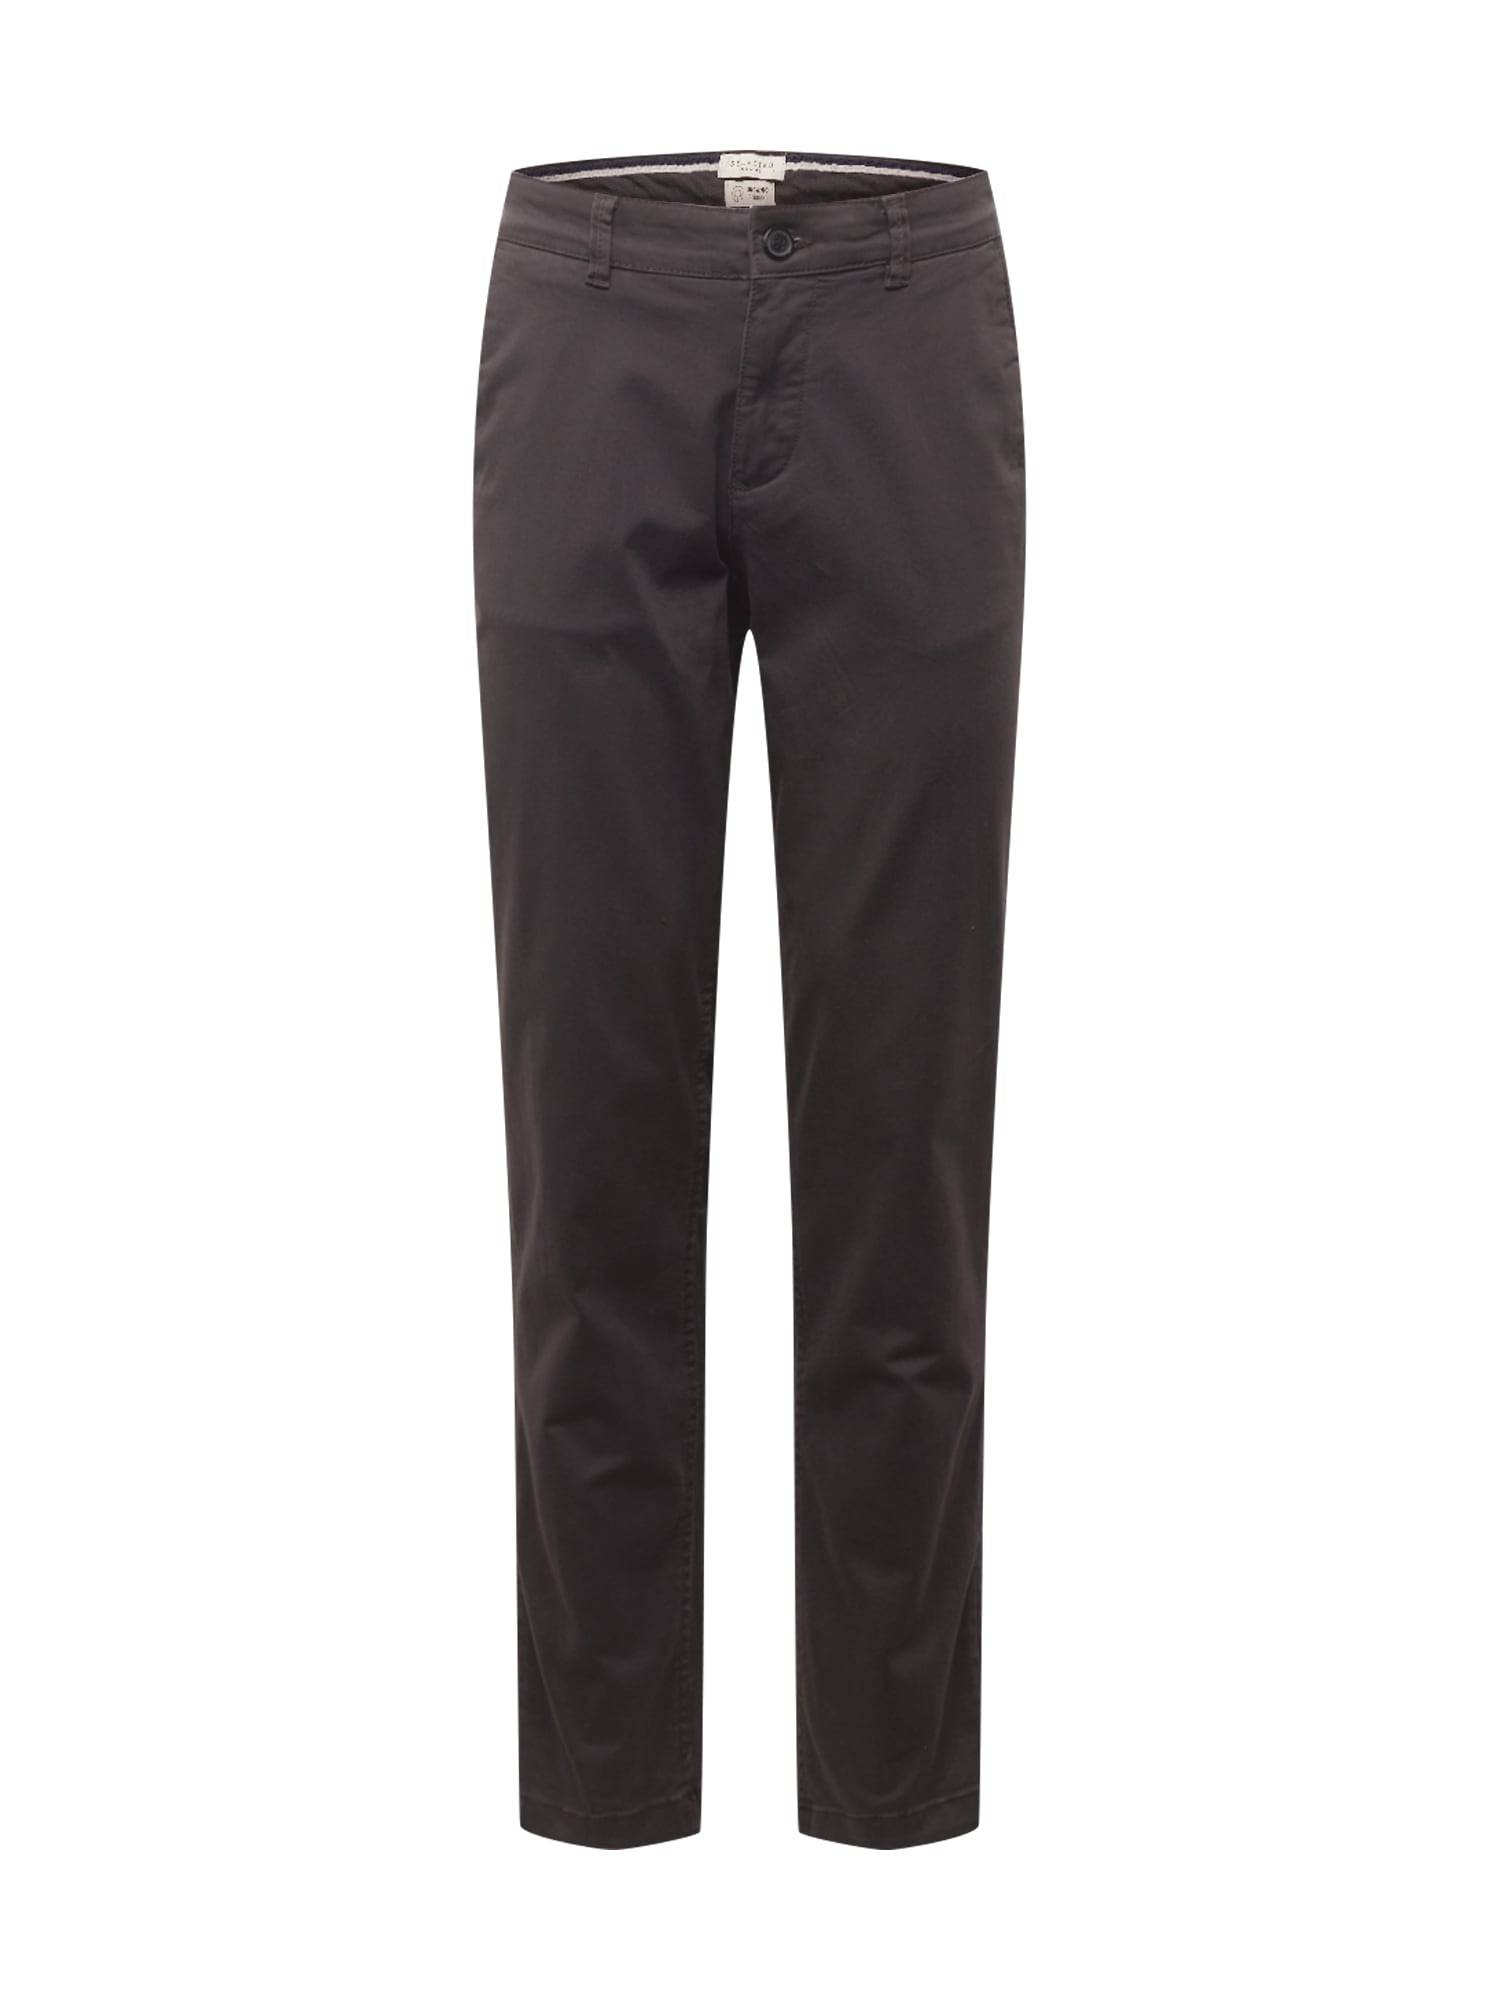 SELECTED HOMME Pantalon chino 'NEW PARIS'  - Gris - Taille: 38 - male